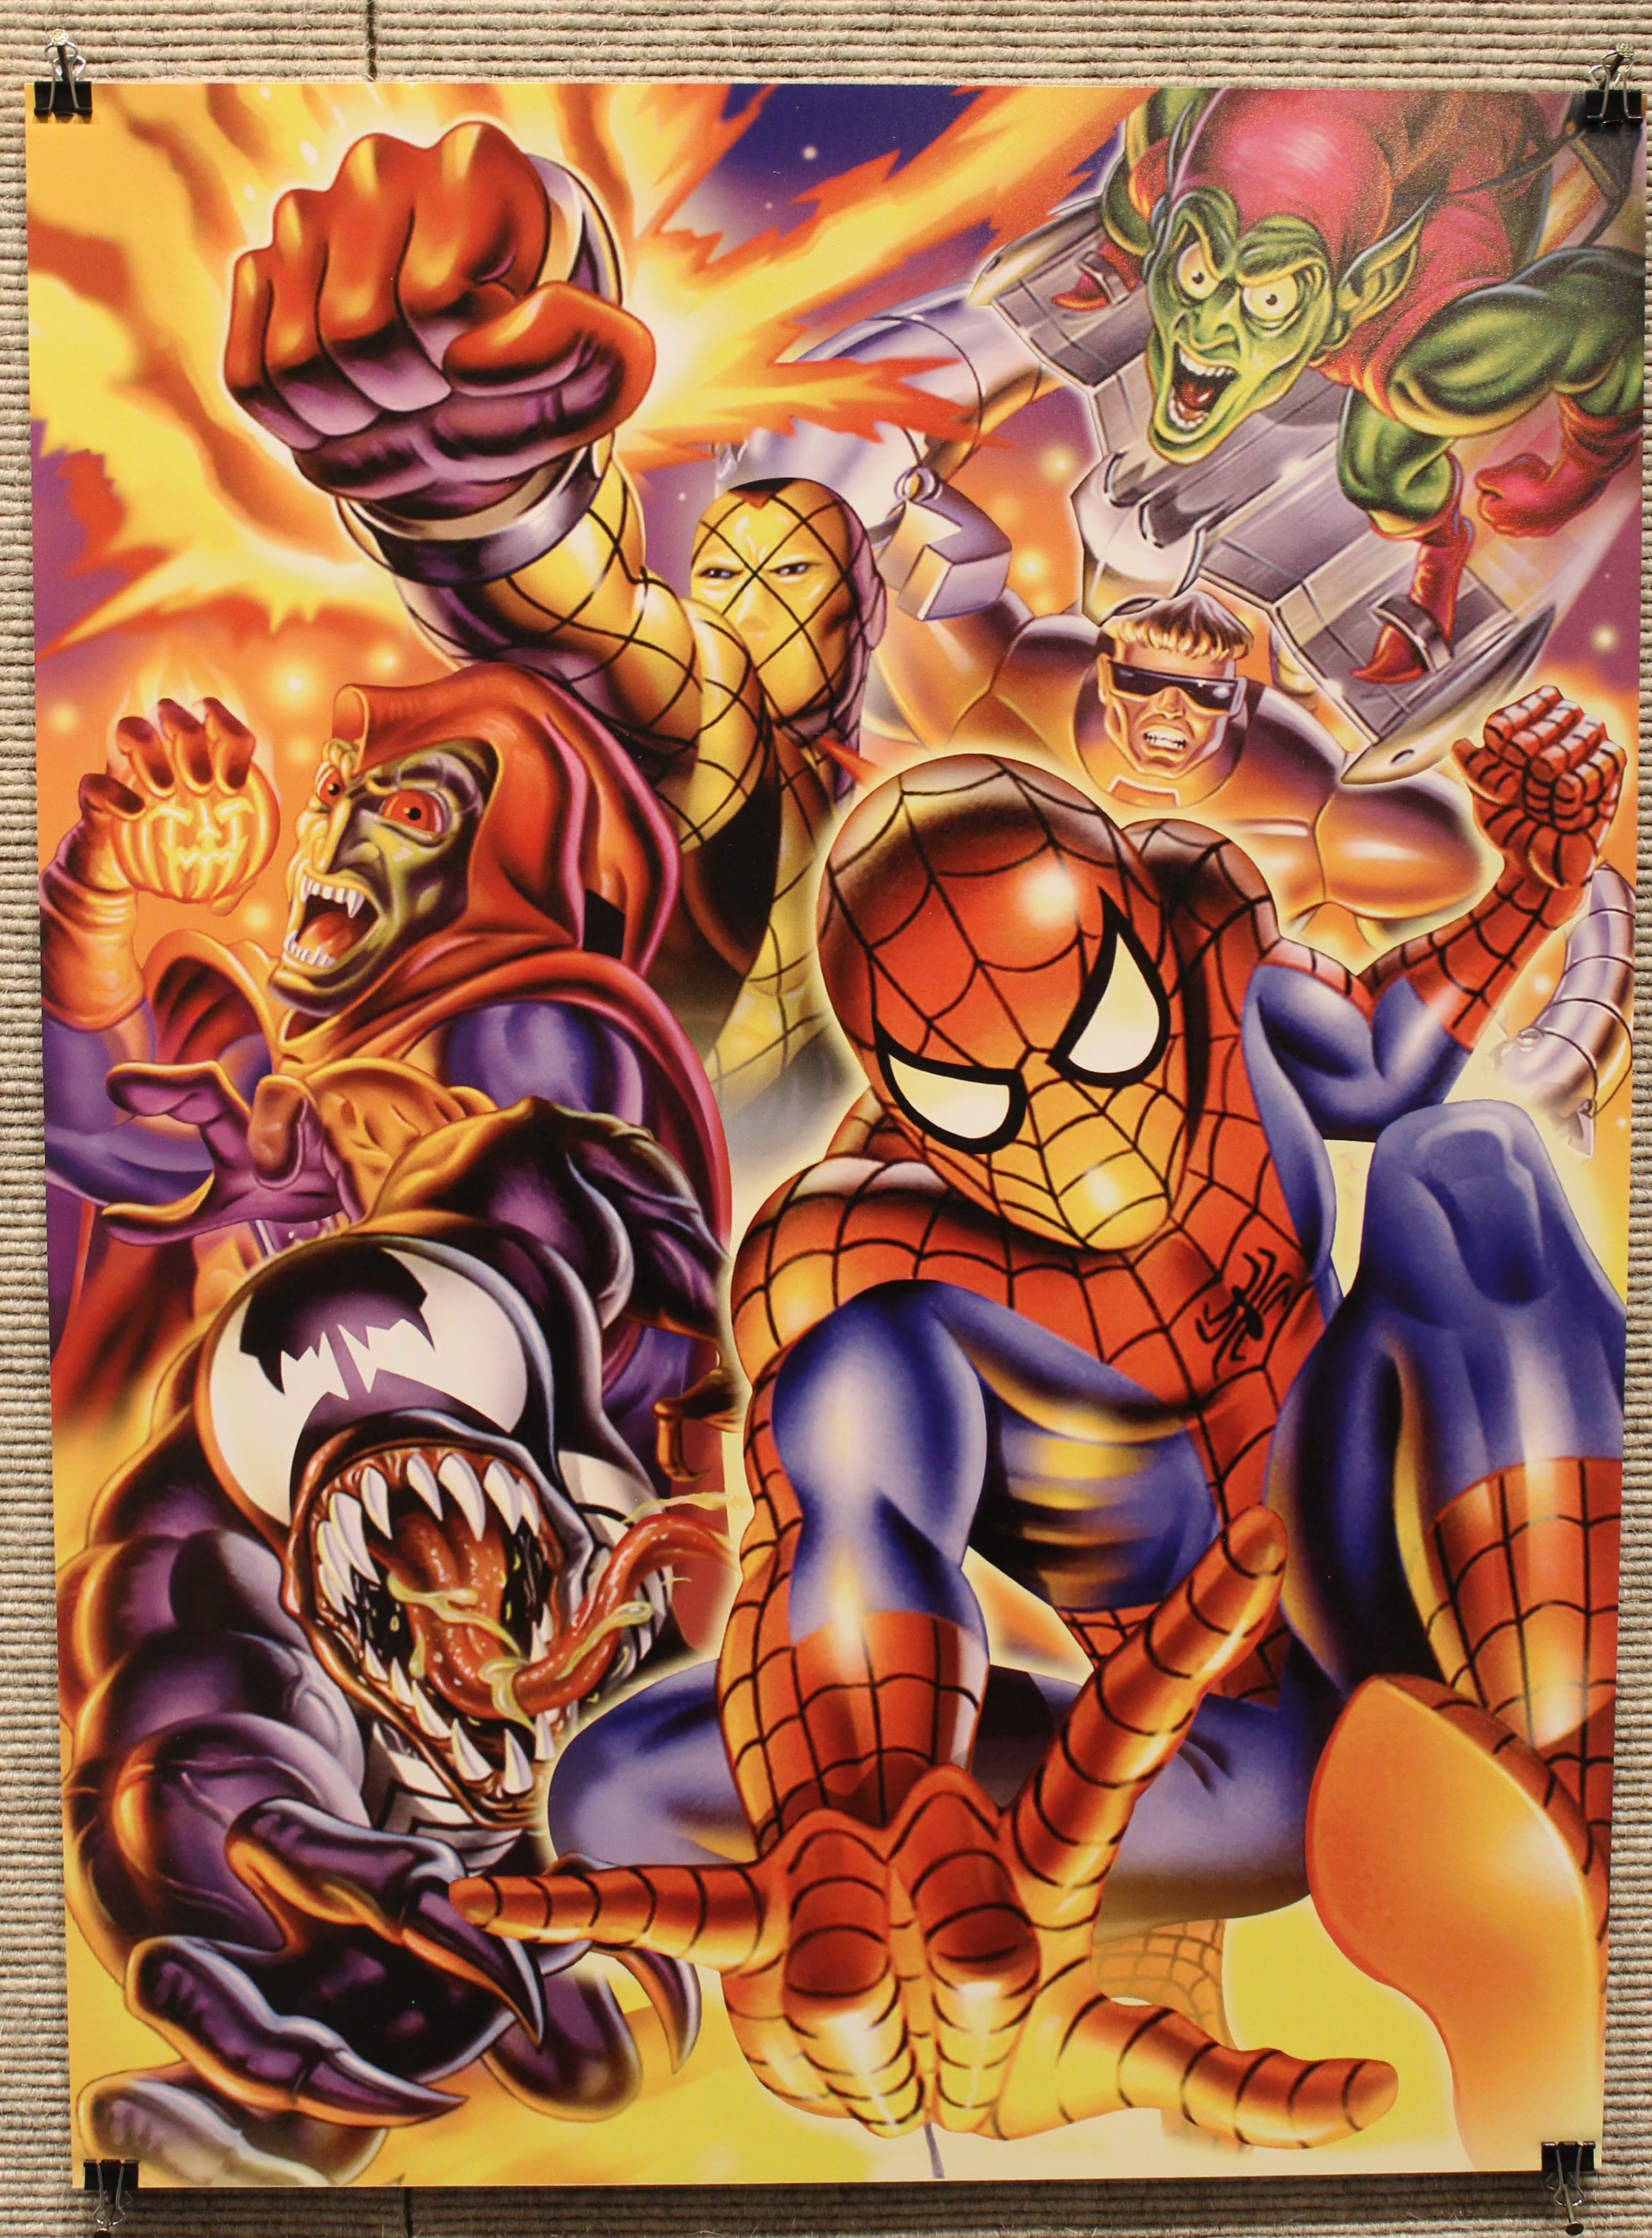 Image of a Marvel cards montage featuring Spider-Man, Venom, the Green Goblin, and other Marvel characters